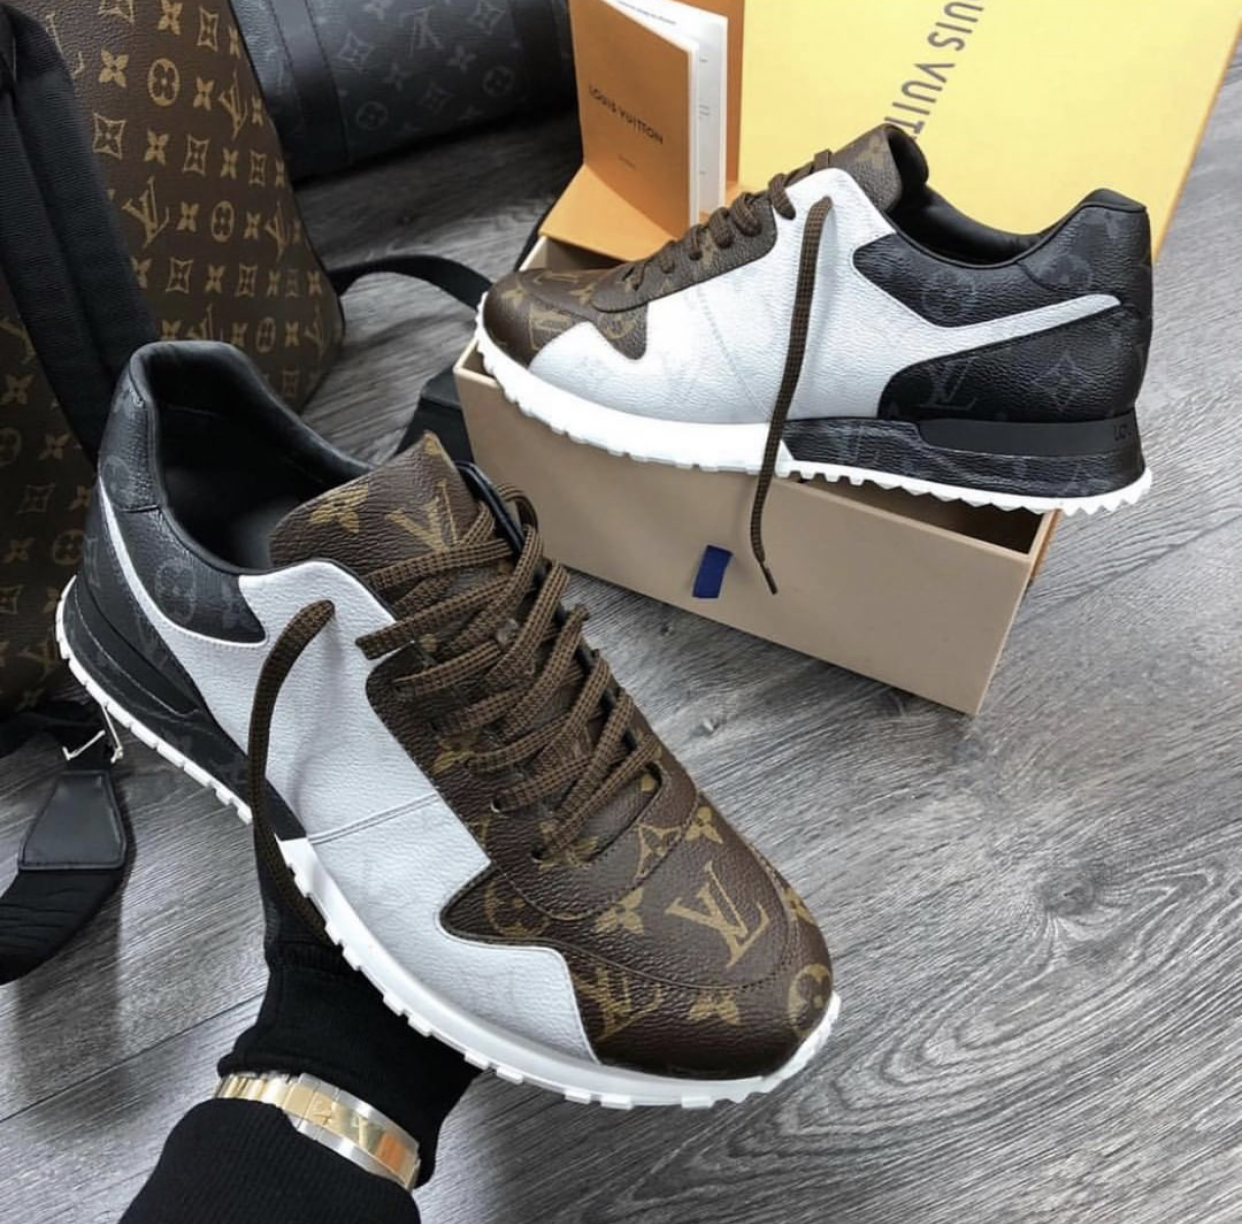 Louis Vuitton Shoes for Men's Louis Vuitton Sneakers #9115930